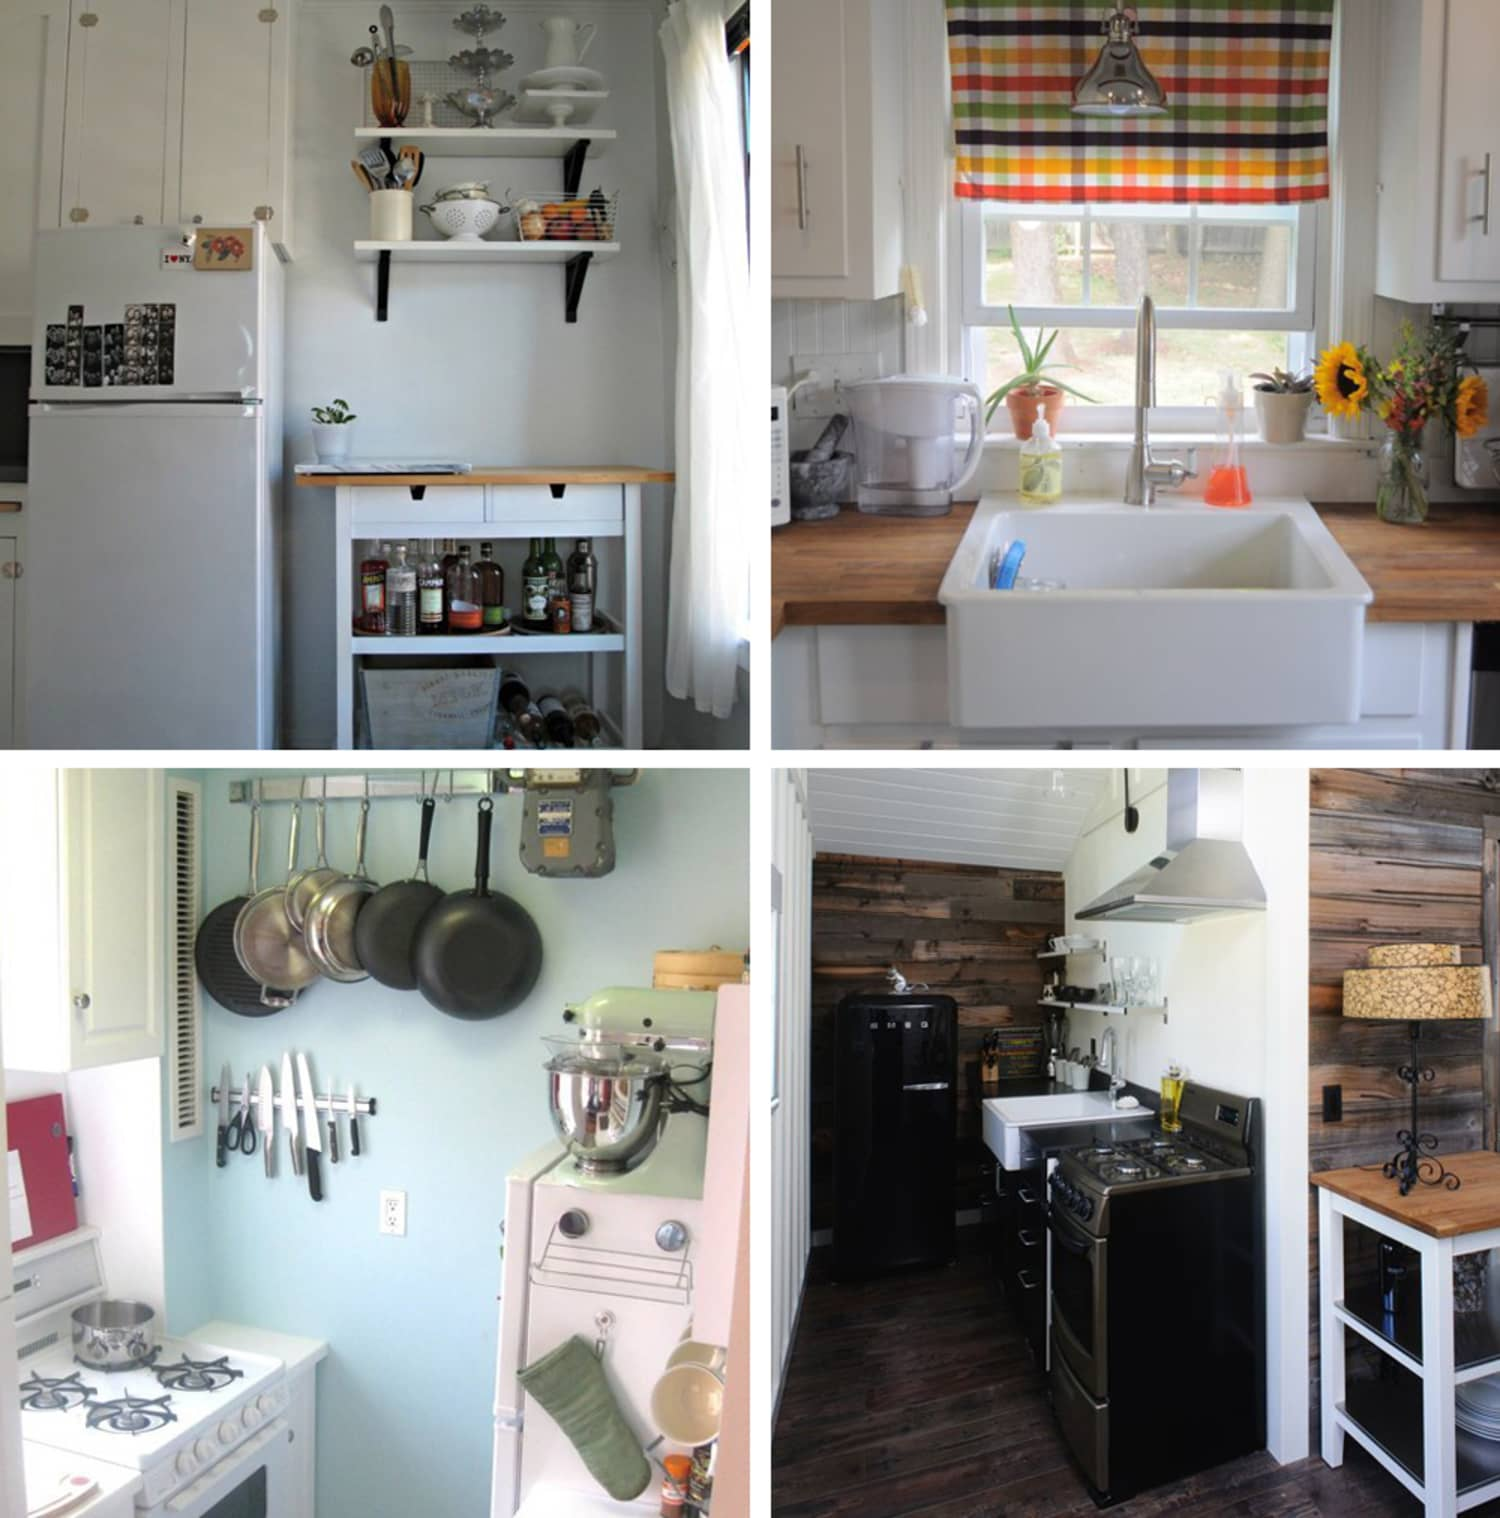 5 Things We Learned From the 2013 Small Cool Kitchens Contest